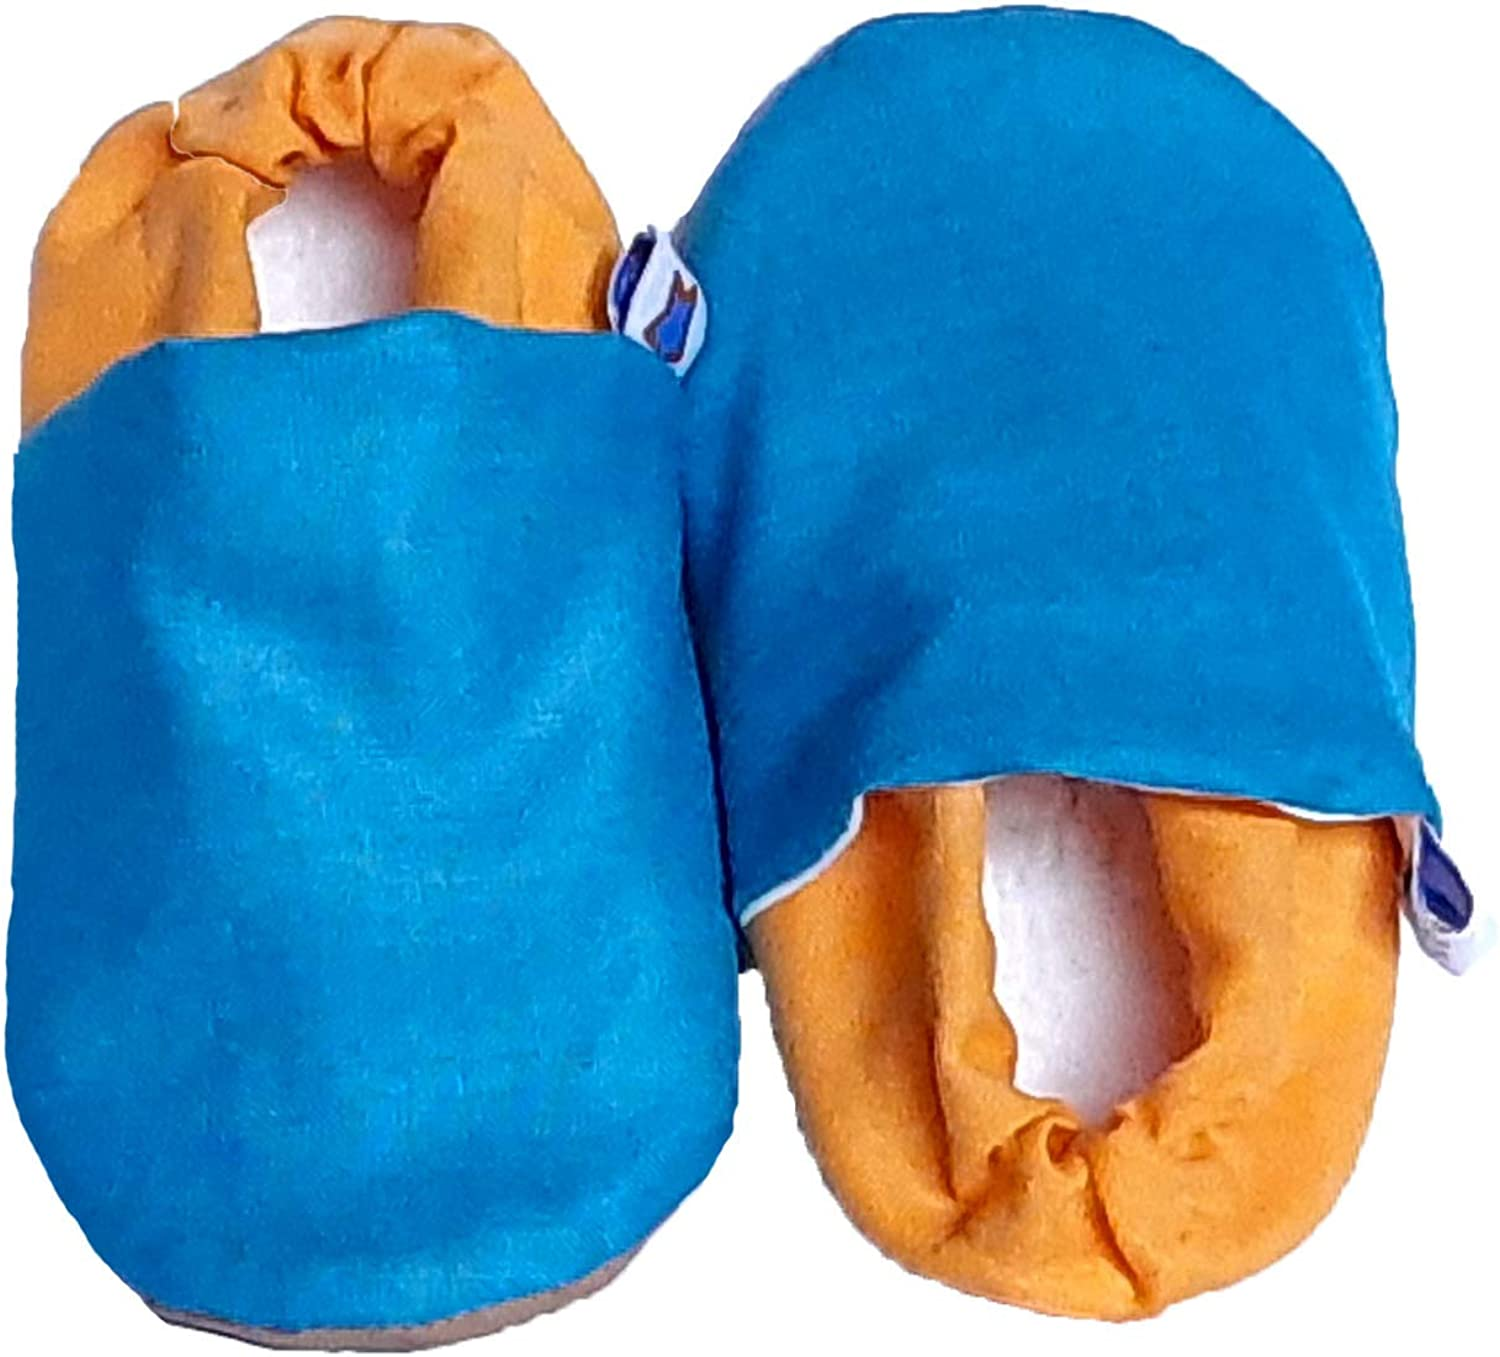 SKIPS Cotton Soft Sole Shoes, Indoor Shoes, for First Walker, Baby Girls Boys, Crib Shoes Non Slip Non Skid Bottom- Blue Yellow